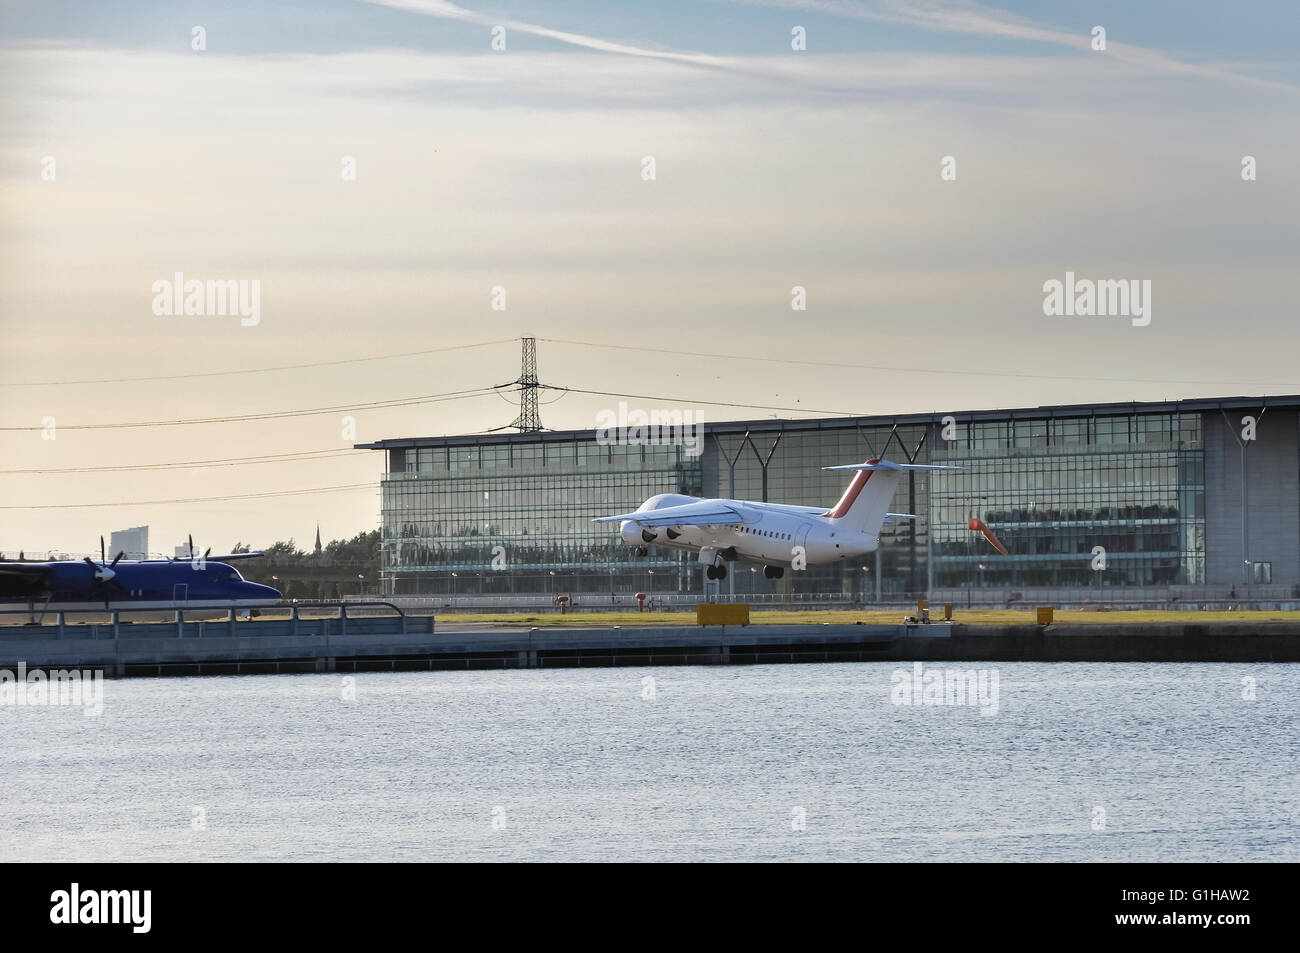 View of an airplane taking off from the London City Airport, UK Stock Photo